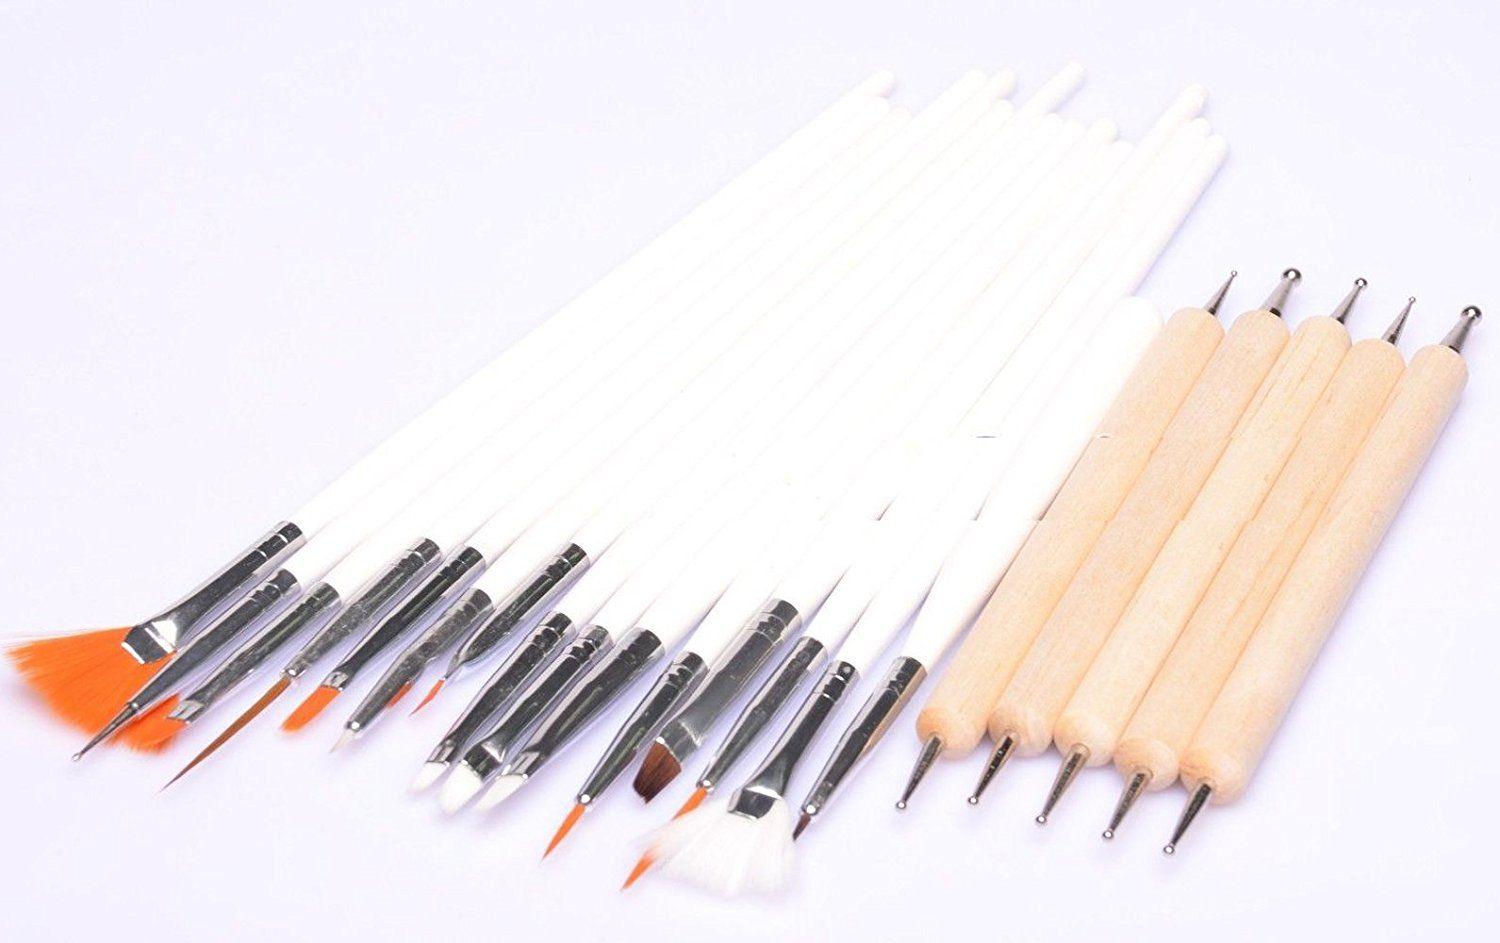 HotEnergy 15 Pcs UV Gel Acrylic Nail Art Painting Detailing Brushes  5 X2 Way Marbleizing Dotting Pen Set USA ship >>> Check out the image by visiting the link.